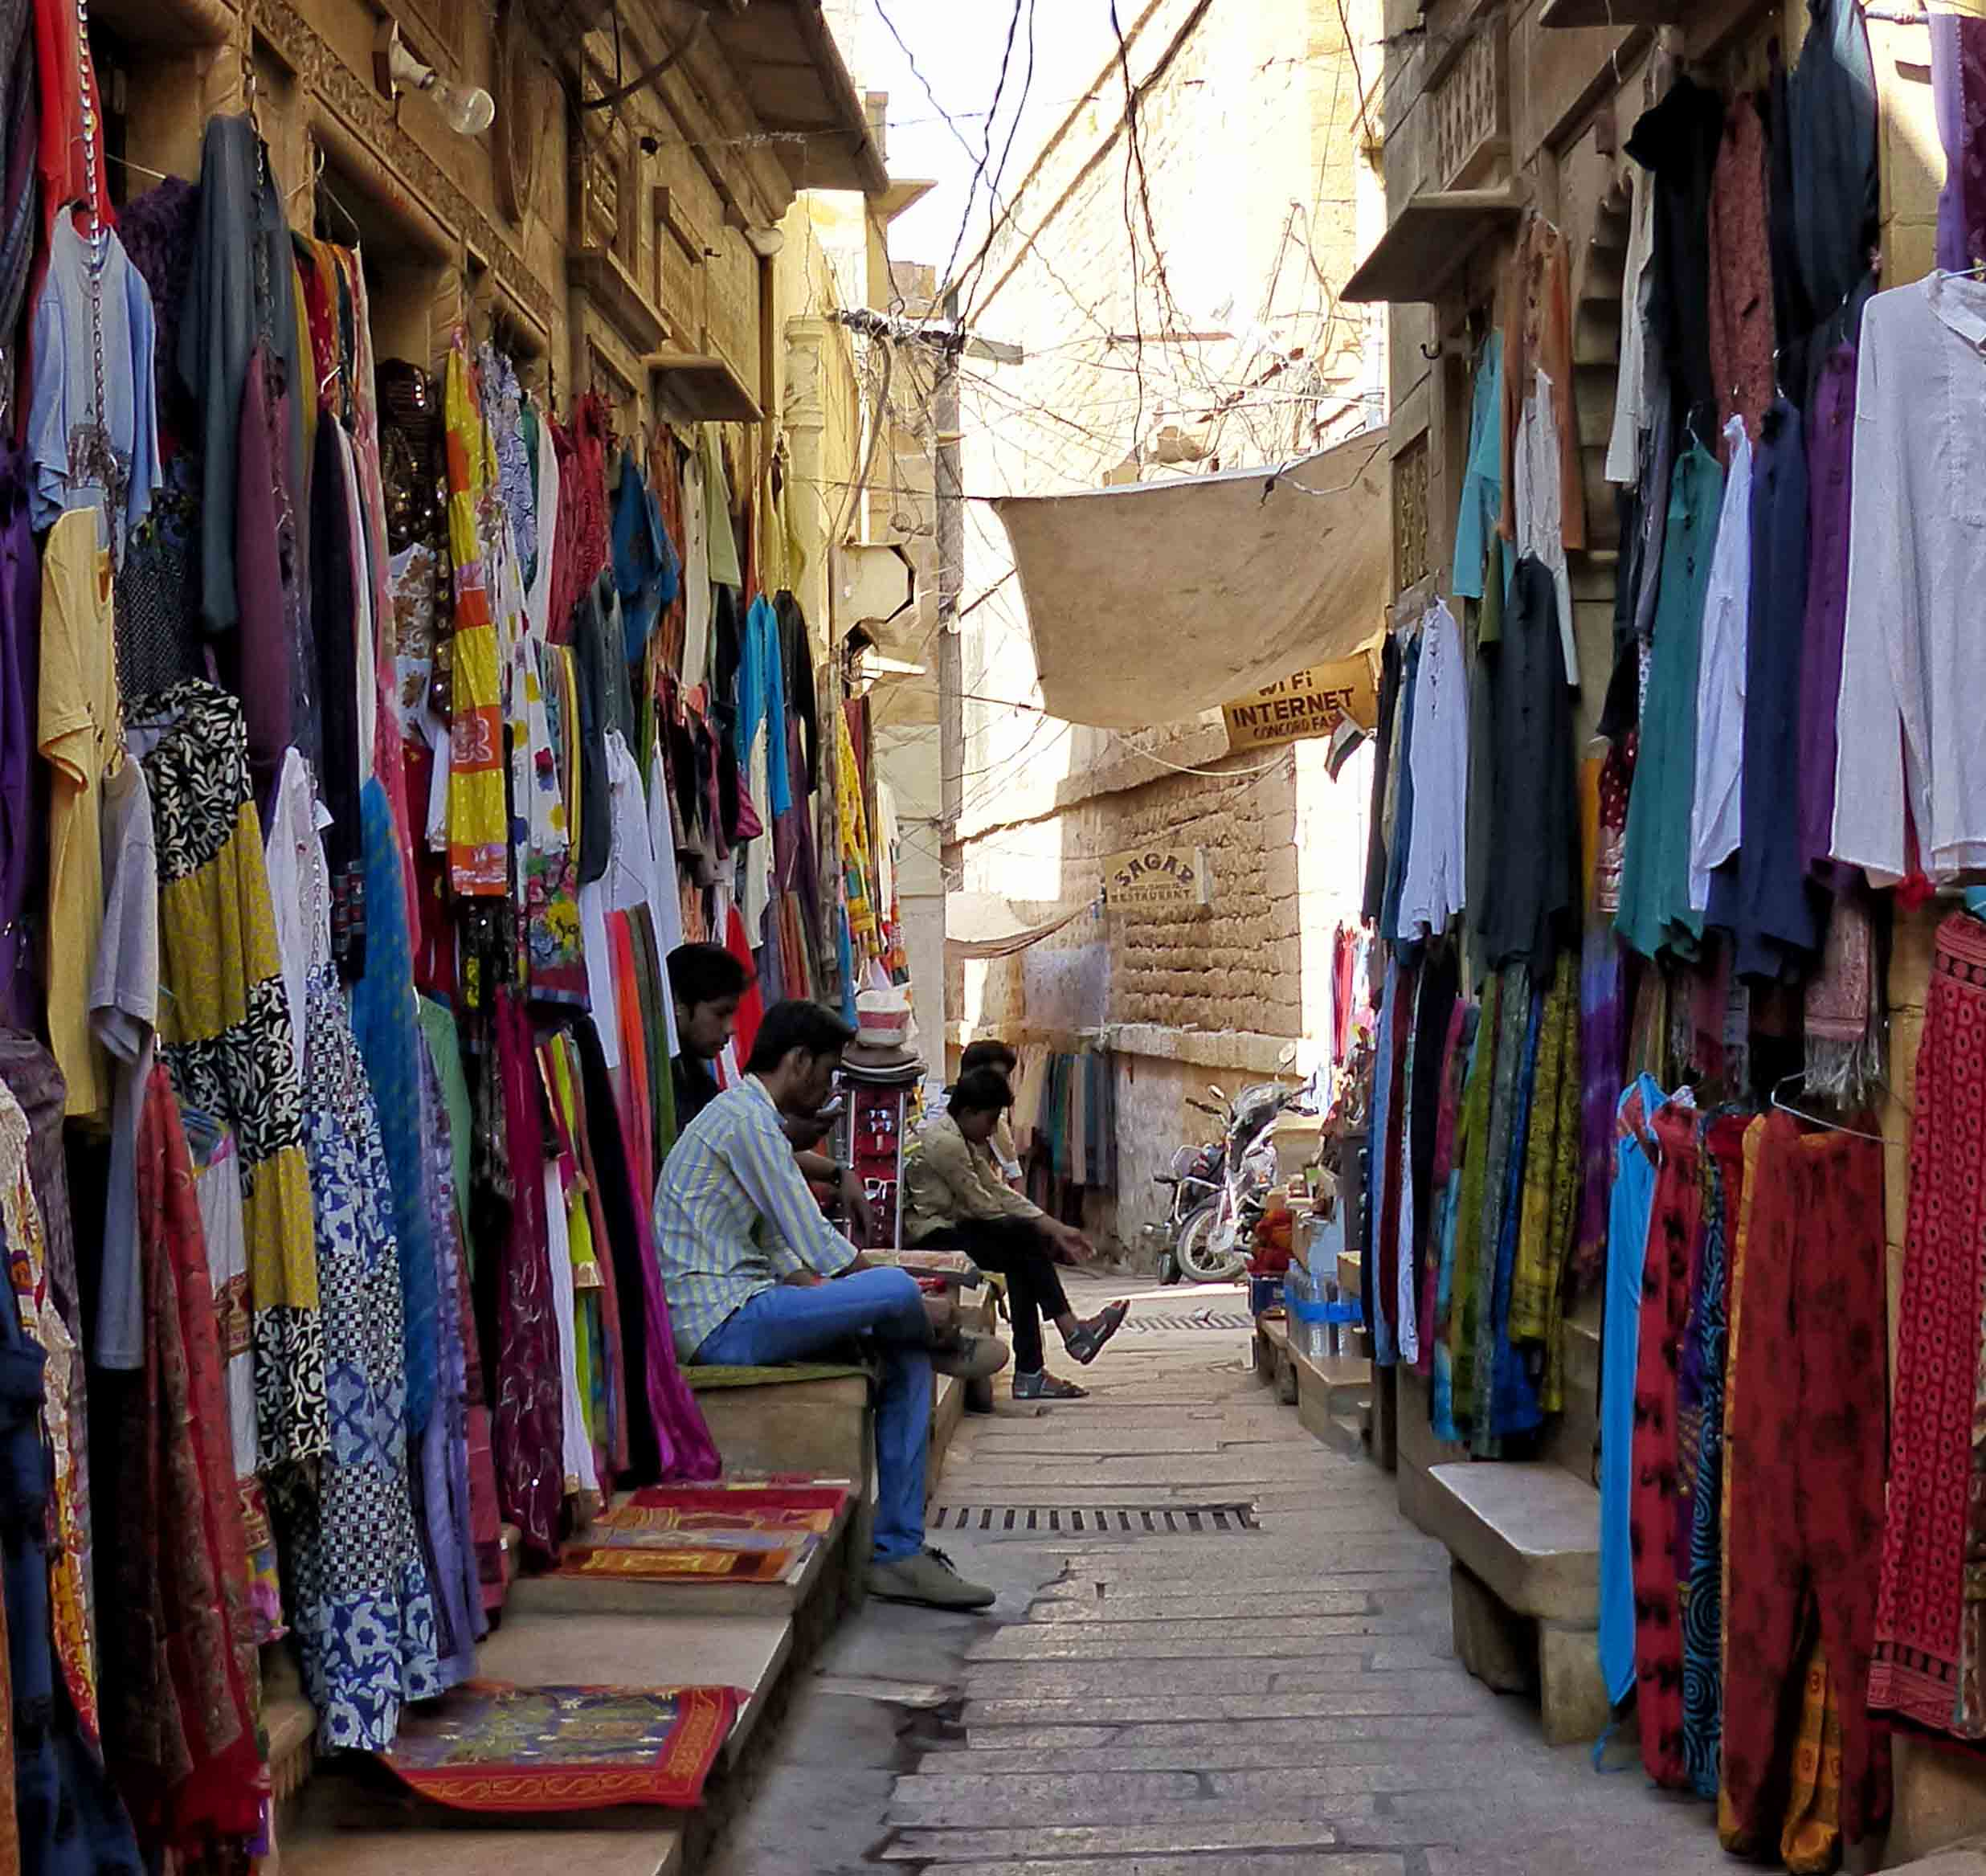 Narrow street with shops selling clothes